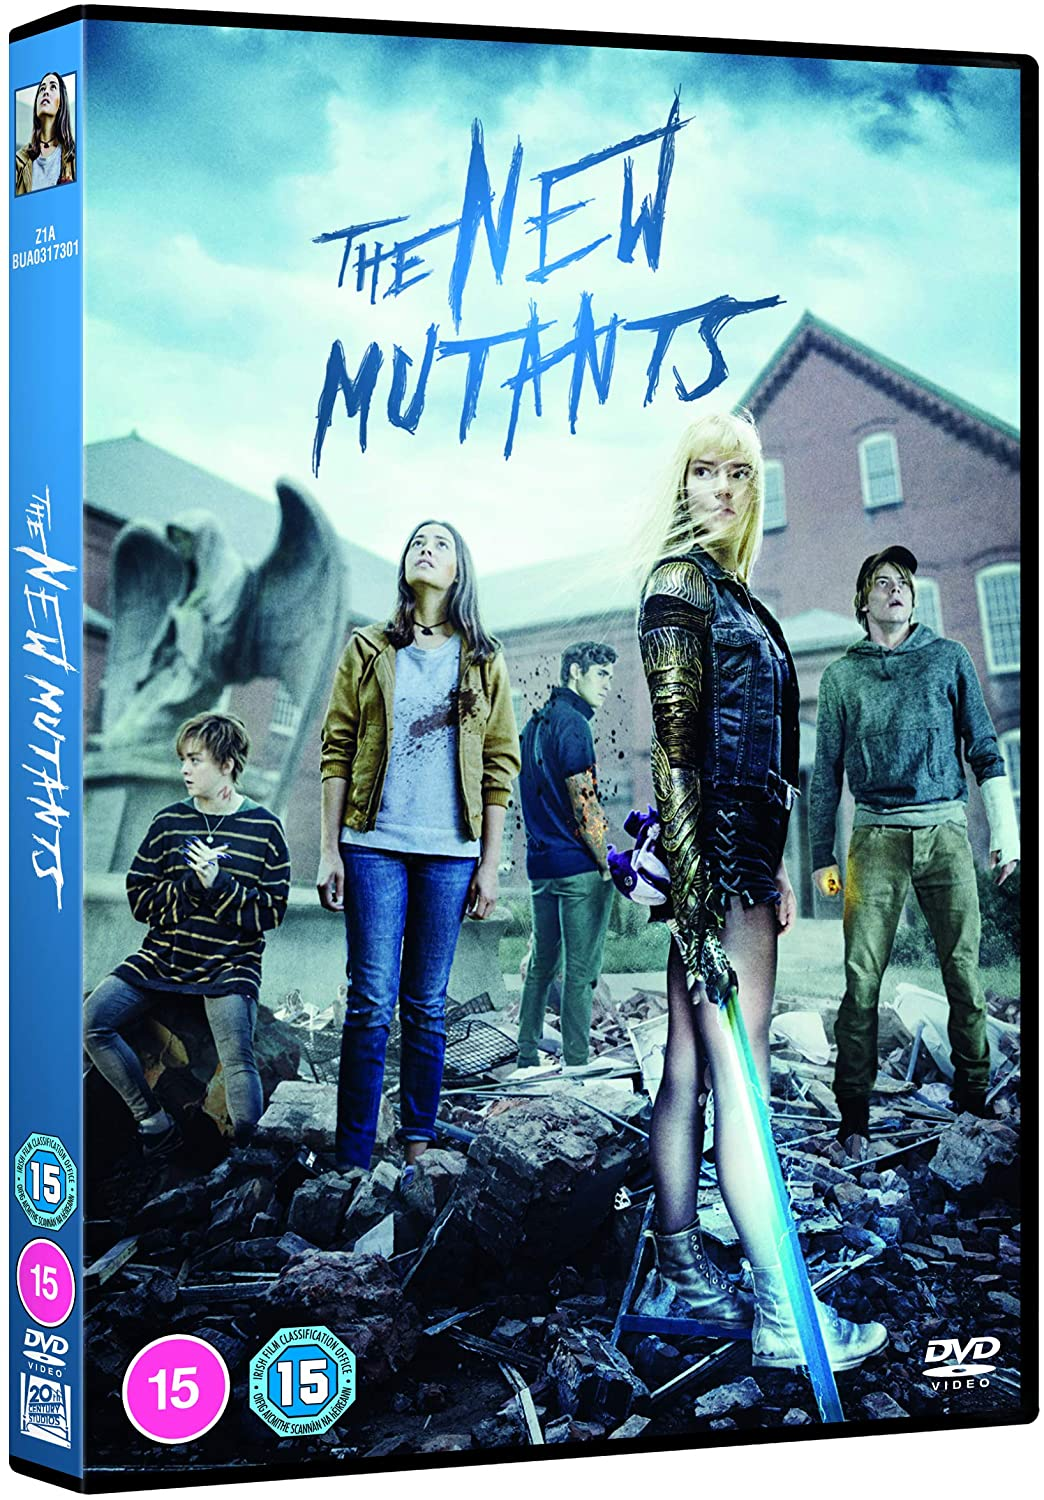 The New Mutants: The kids aren't alright